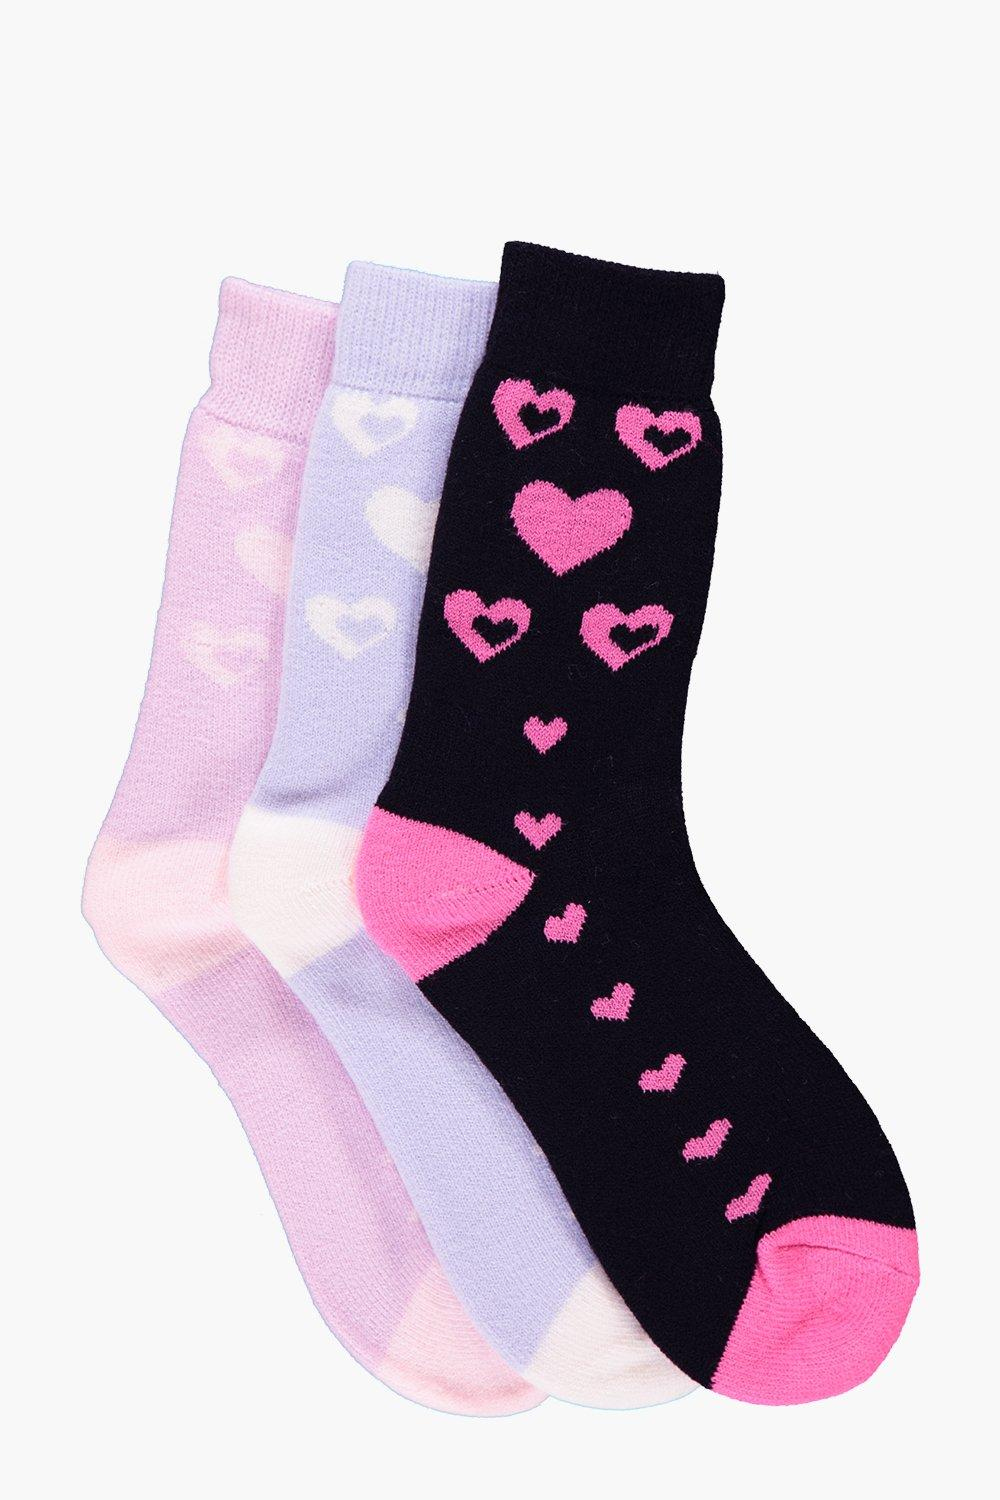 Amber Heart Thermal Slipper Socks 3 Pack